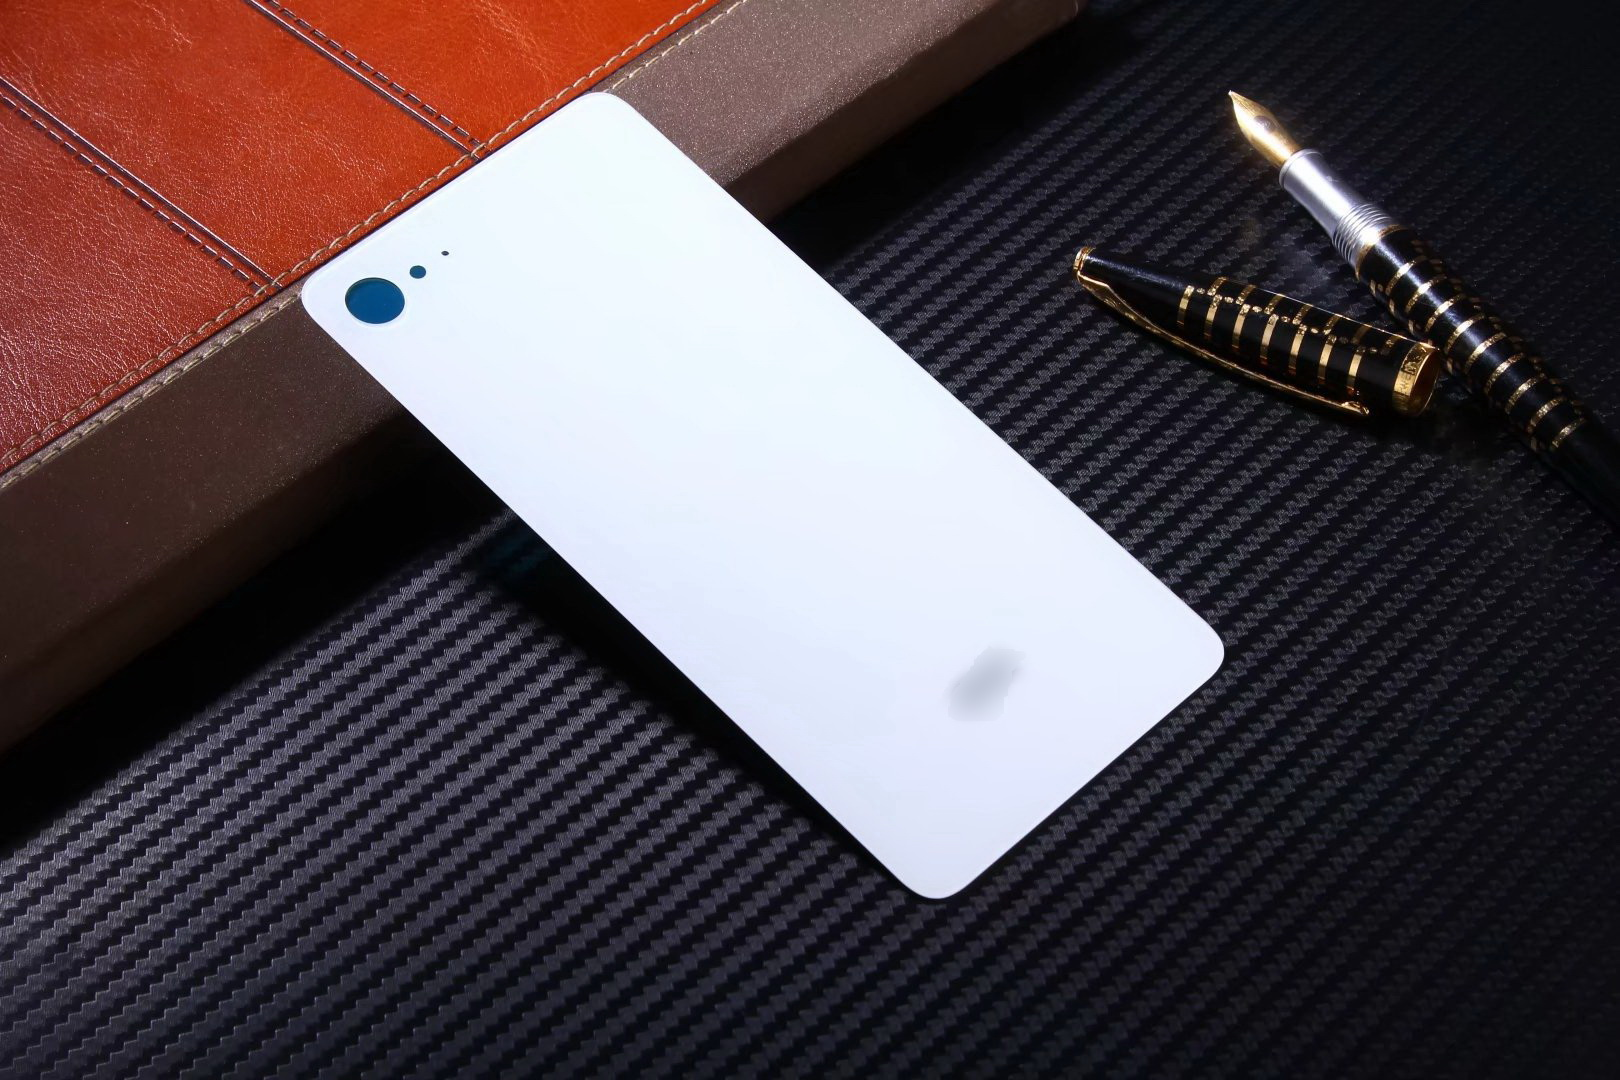 New Replace Battery Back Cover case For Lenovo ZUK Z2 Hard Glass With Sticker Housing protective cases for ZUK Z2 phone shell